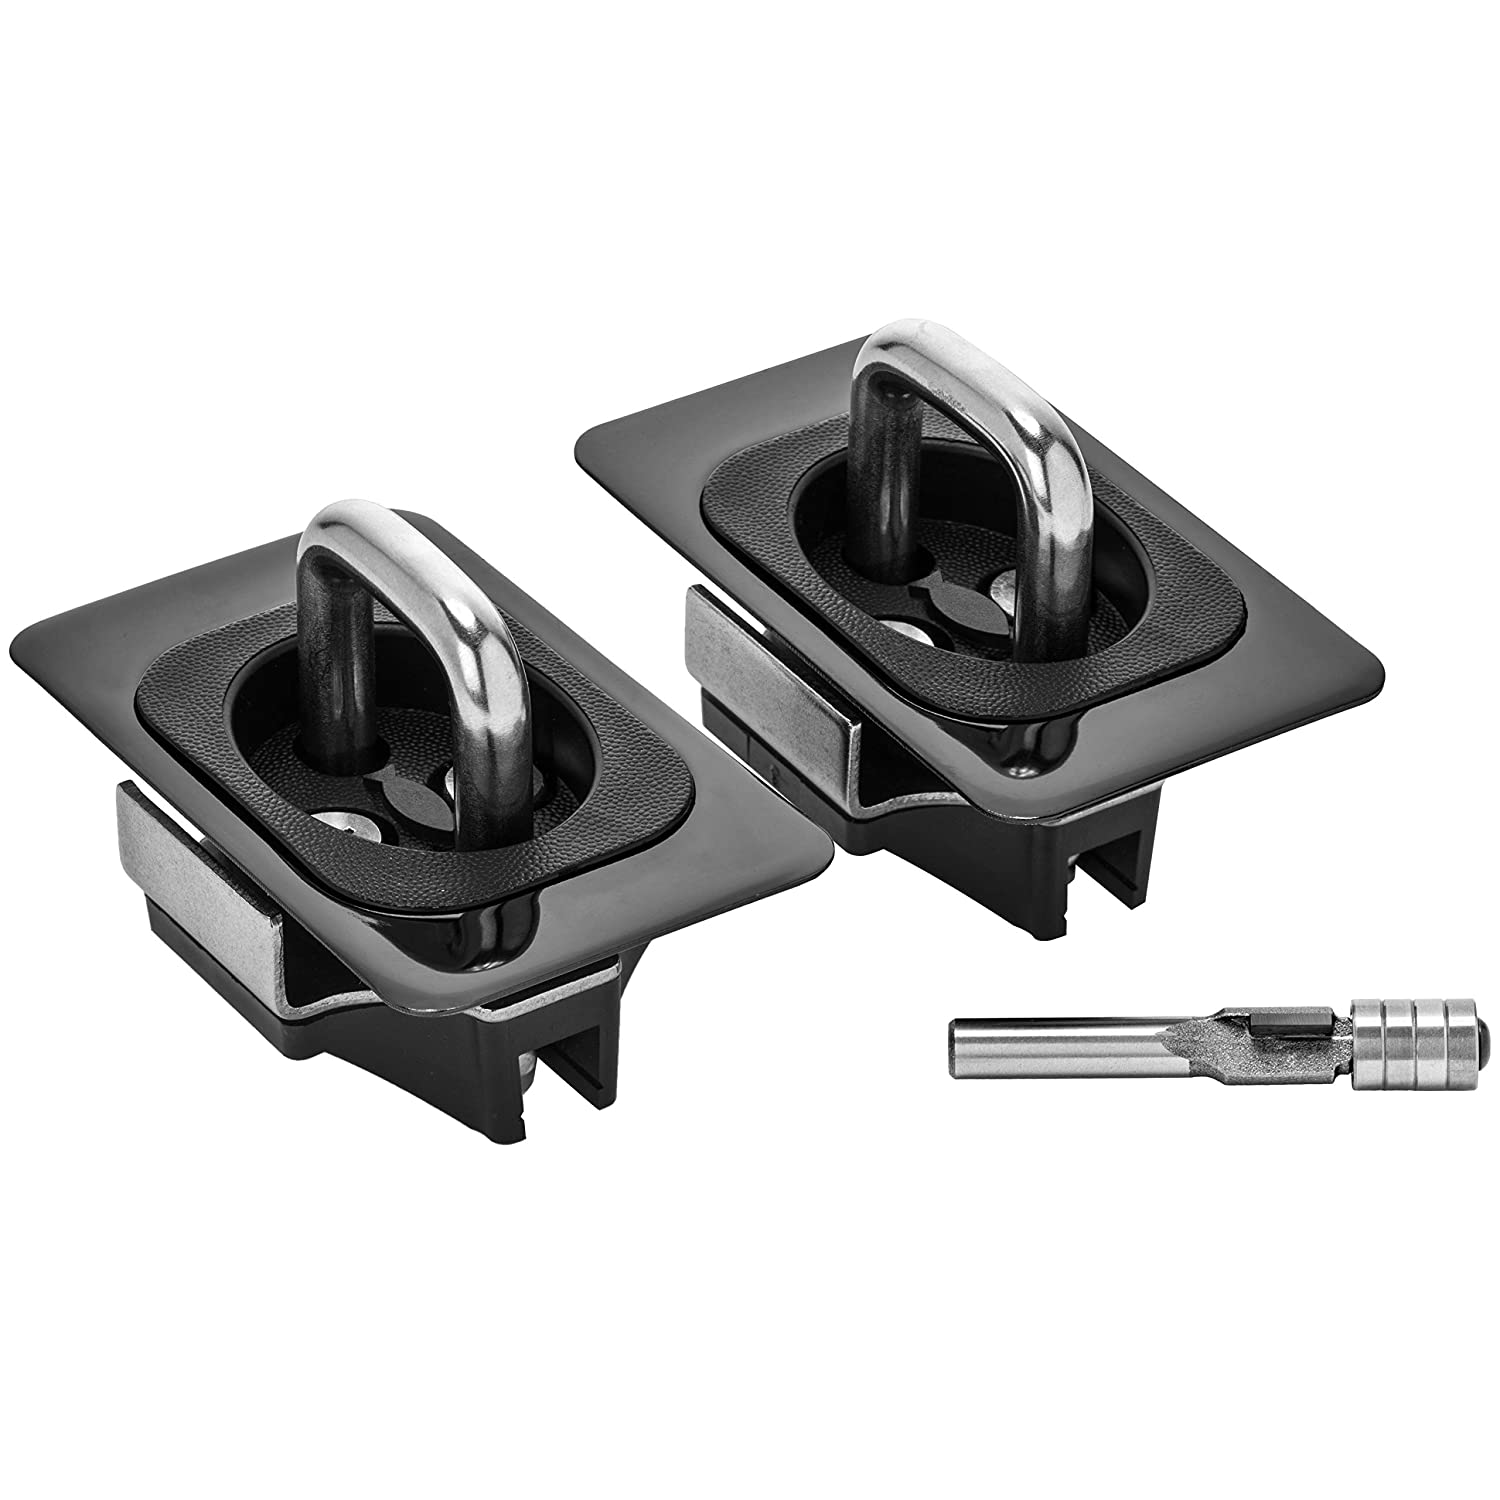 Bull Ring 9074 Black Nickel for 2014-2019 Tundra Crew Max and Nissan Titan- with Router Bits Included